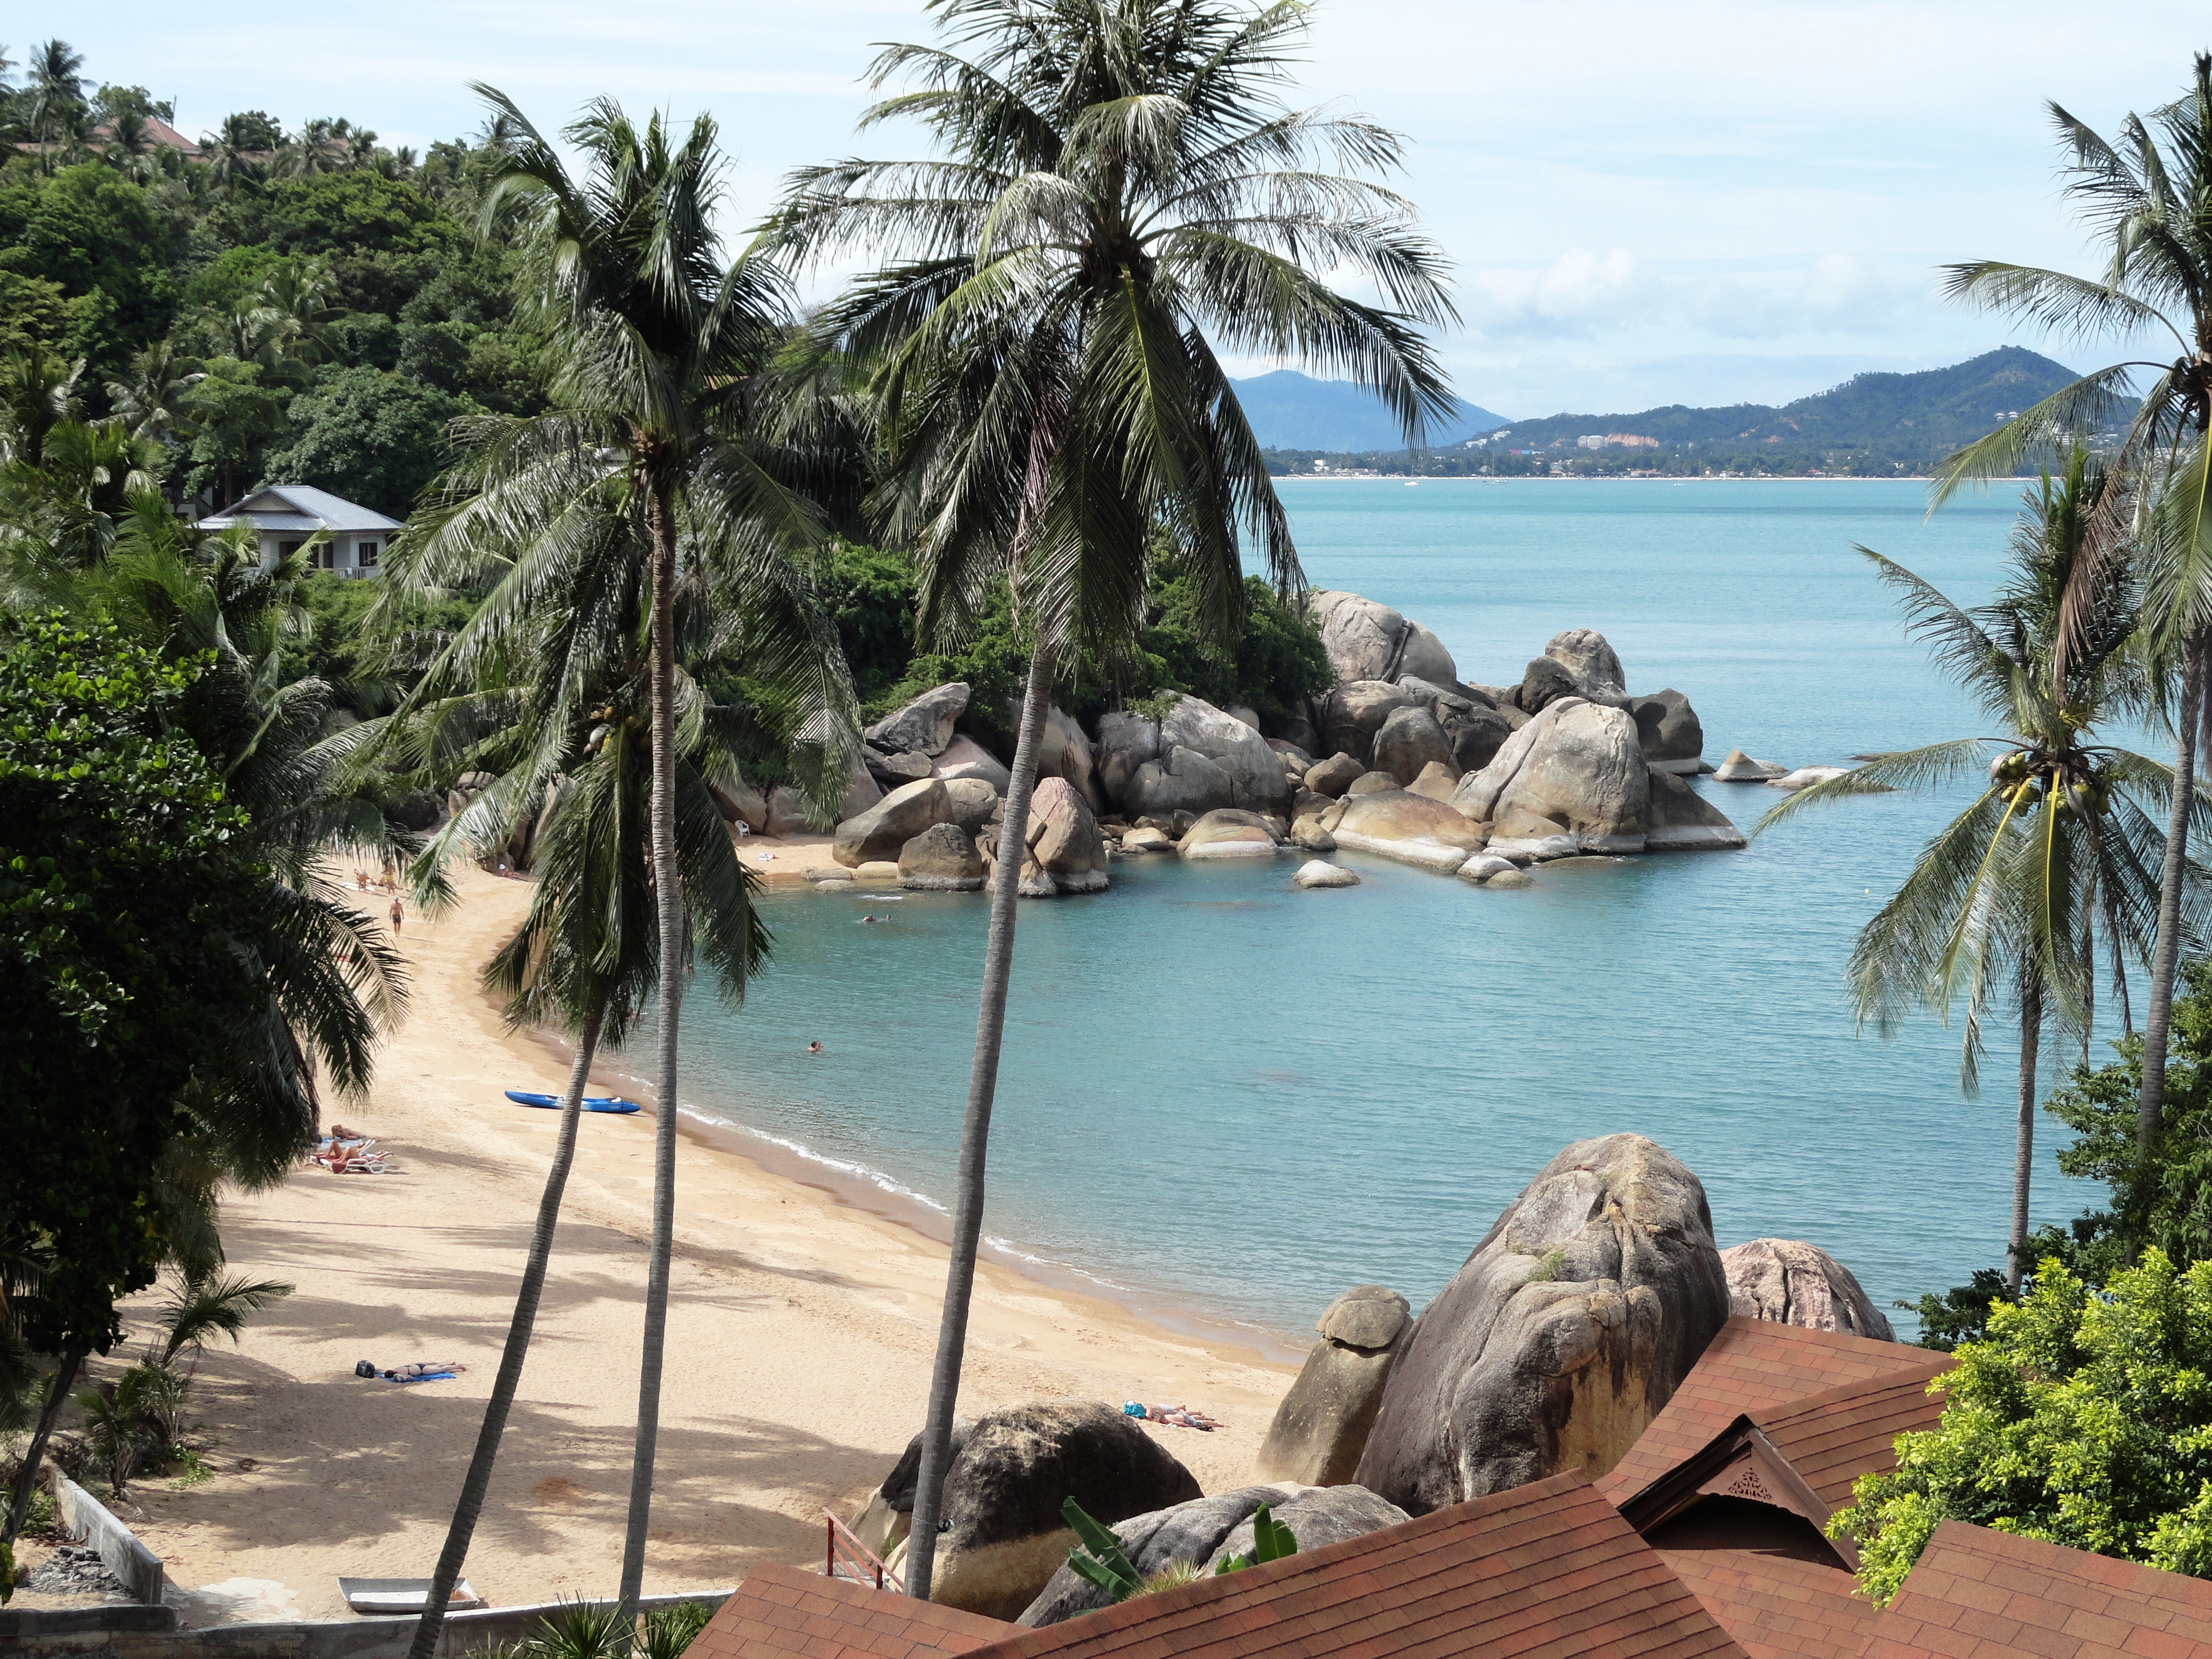 Koh Samui Thailand S Picture Perfect Tropical Island